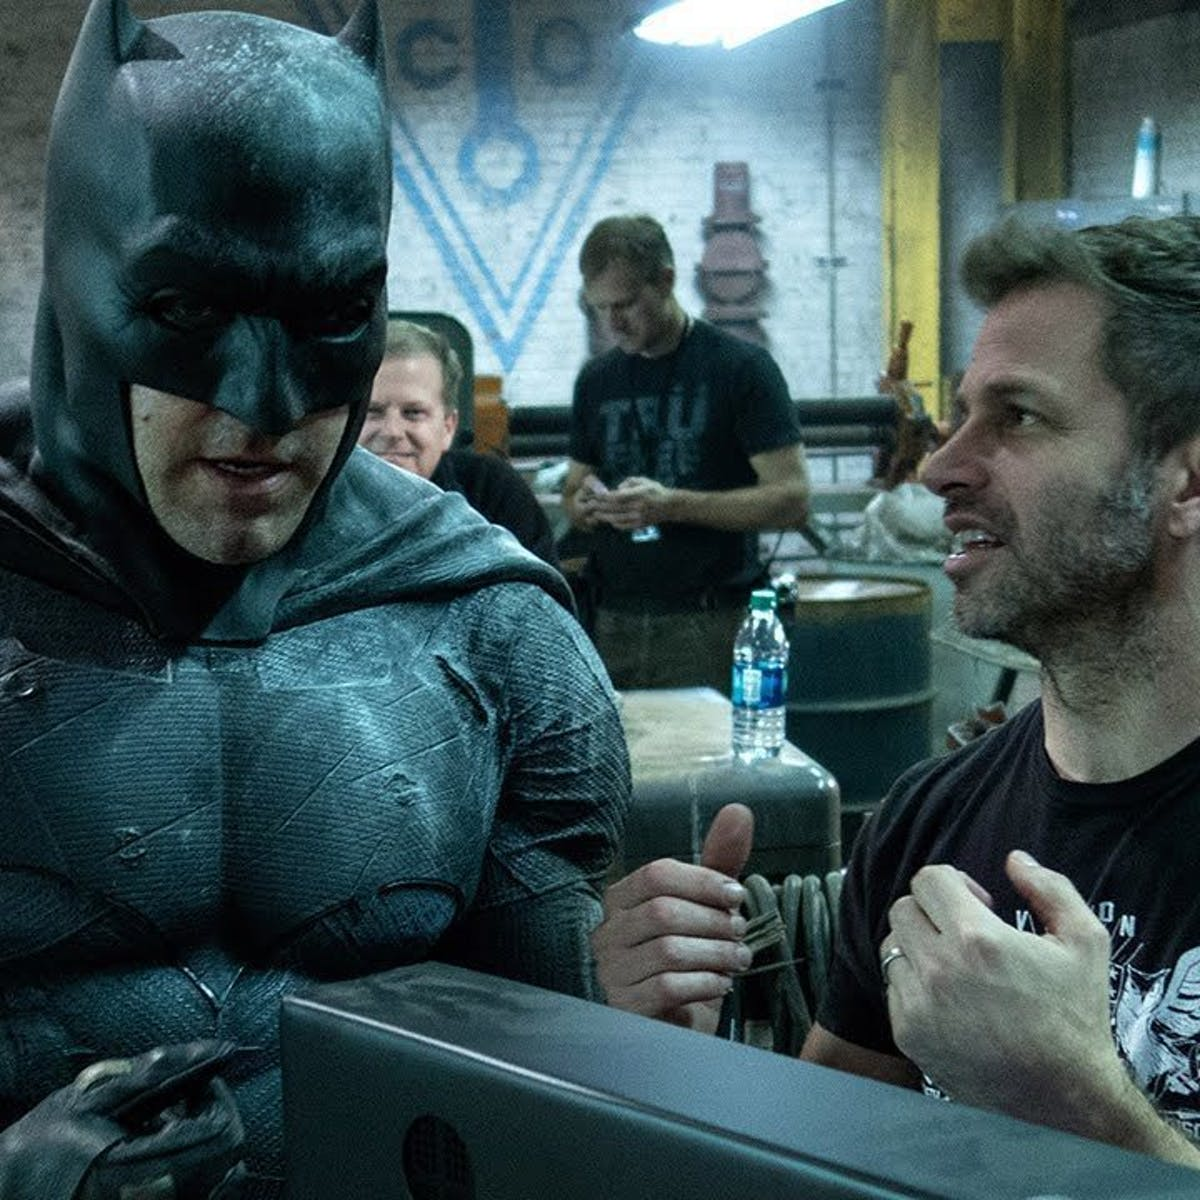 Snyder Cut, explained: A definitive guide to the disputed director's cut